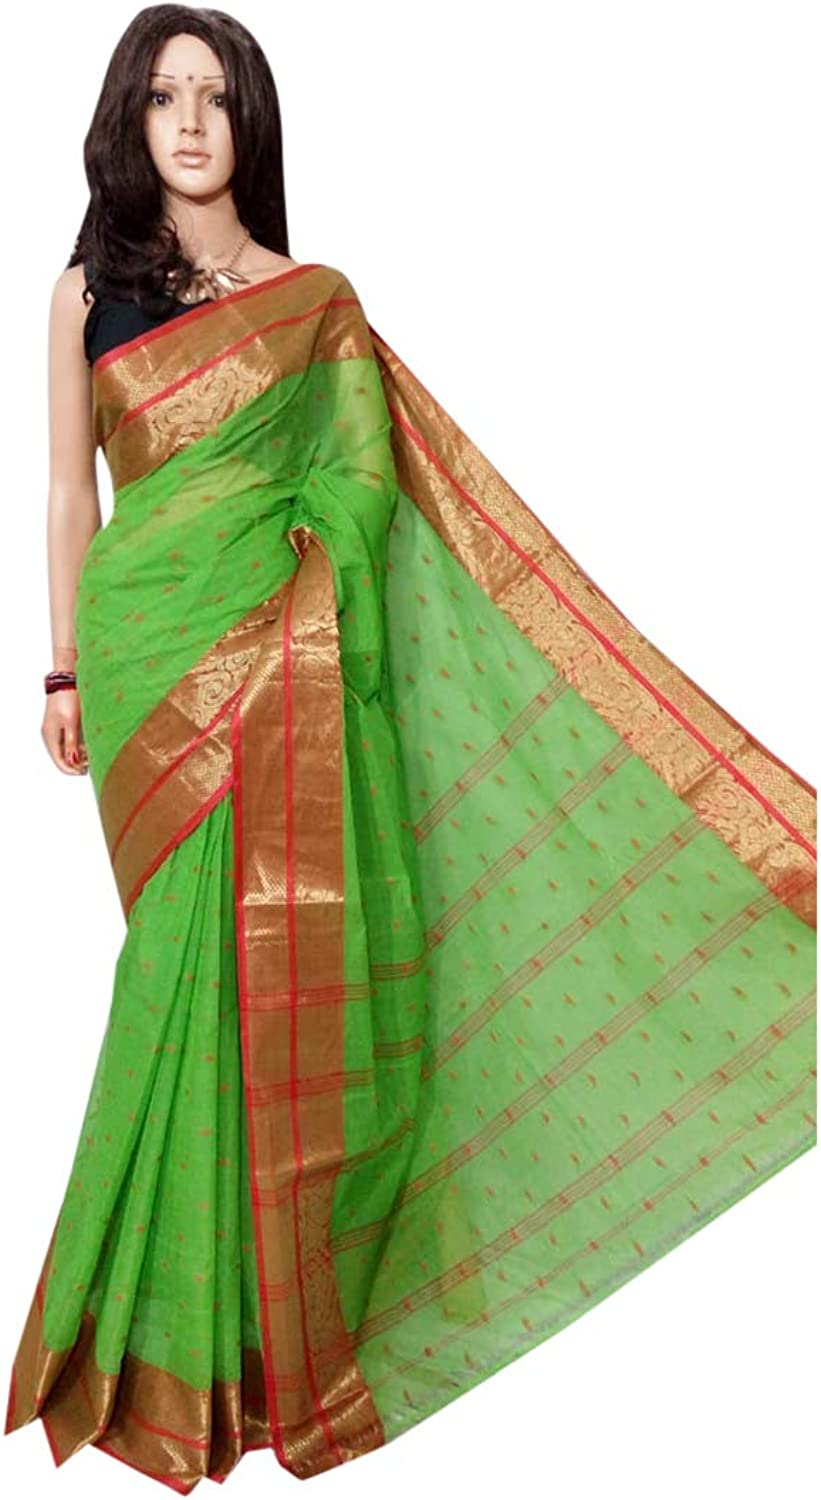 Green Indian Ethnic Pure Cotton tant Sari small print work Beautiful Border work Women saree Festive offer 102A